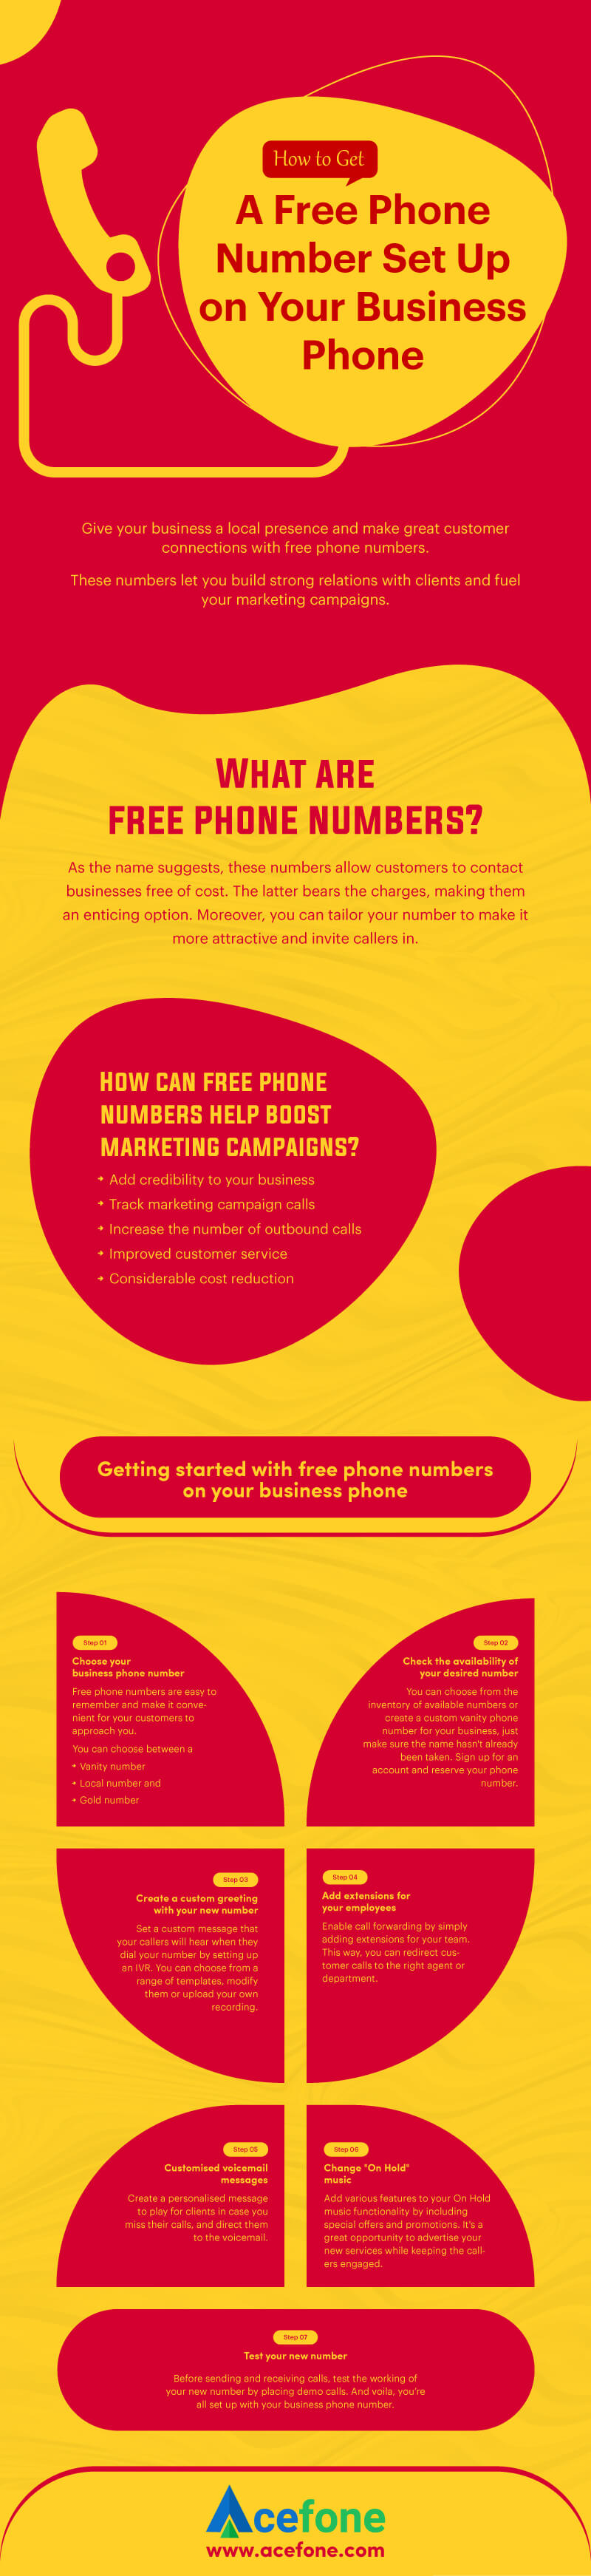 How To Get a Free Phone Number Setup On Your Business Phone - Infographic